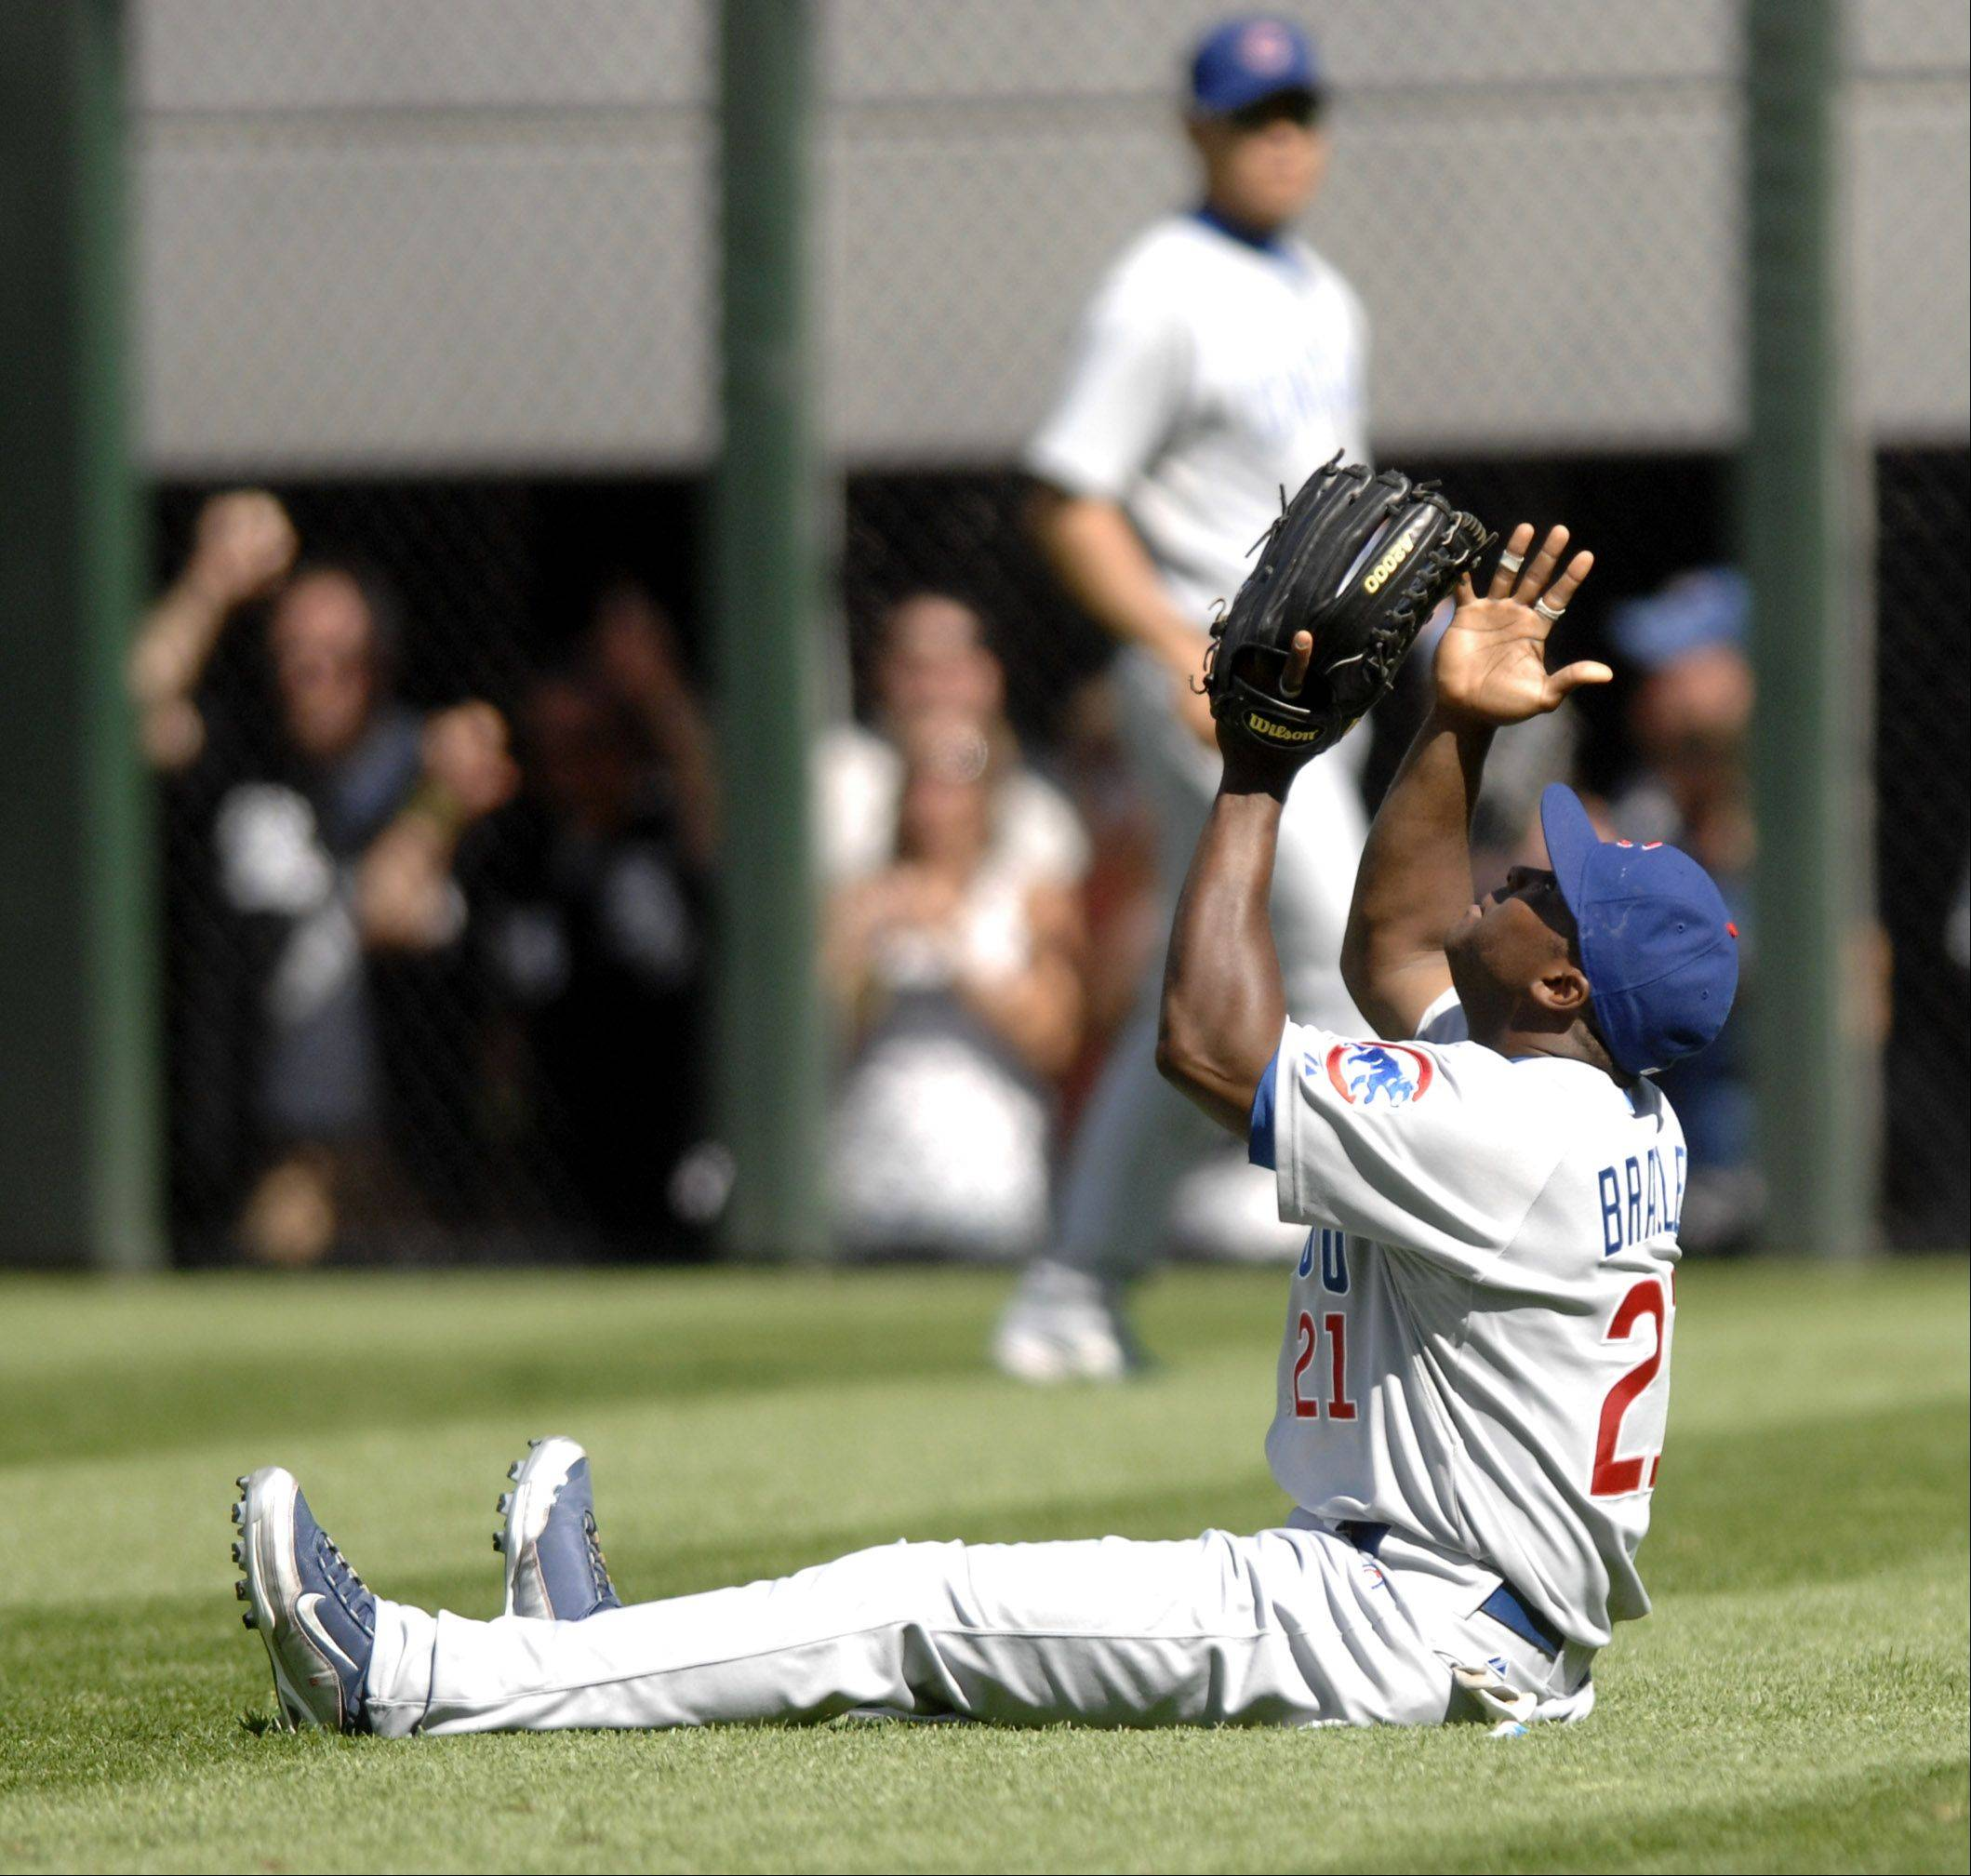 Chicago Cubs' Milton Bradley give thanks above after catching a fly for an out in the fifth inning of Crosstown Classic at U.S. Cellular Field on Friday, June 26.